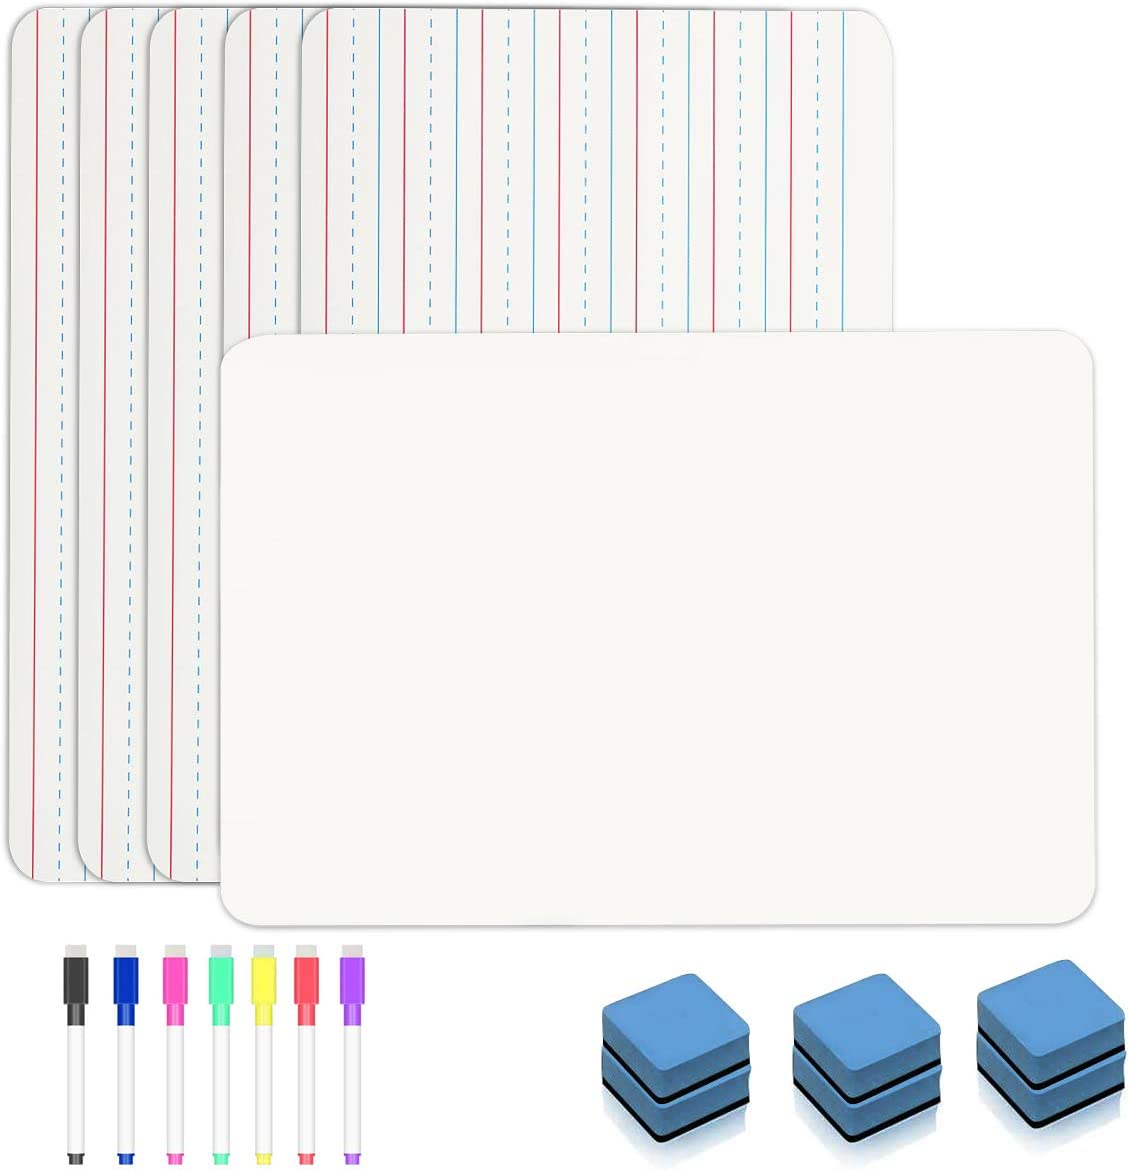 6 Pieces Ruled Fees free!! Lap National uniform free shipping Boards Erase Double Dry Eras Sided